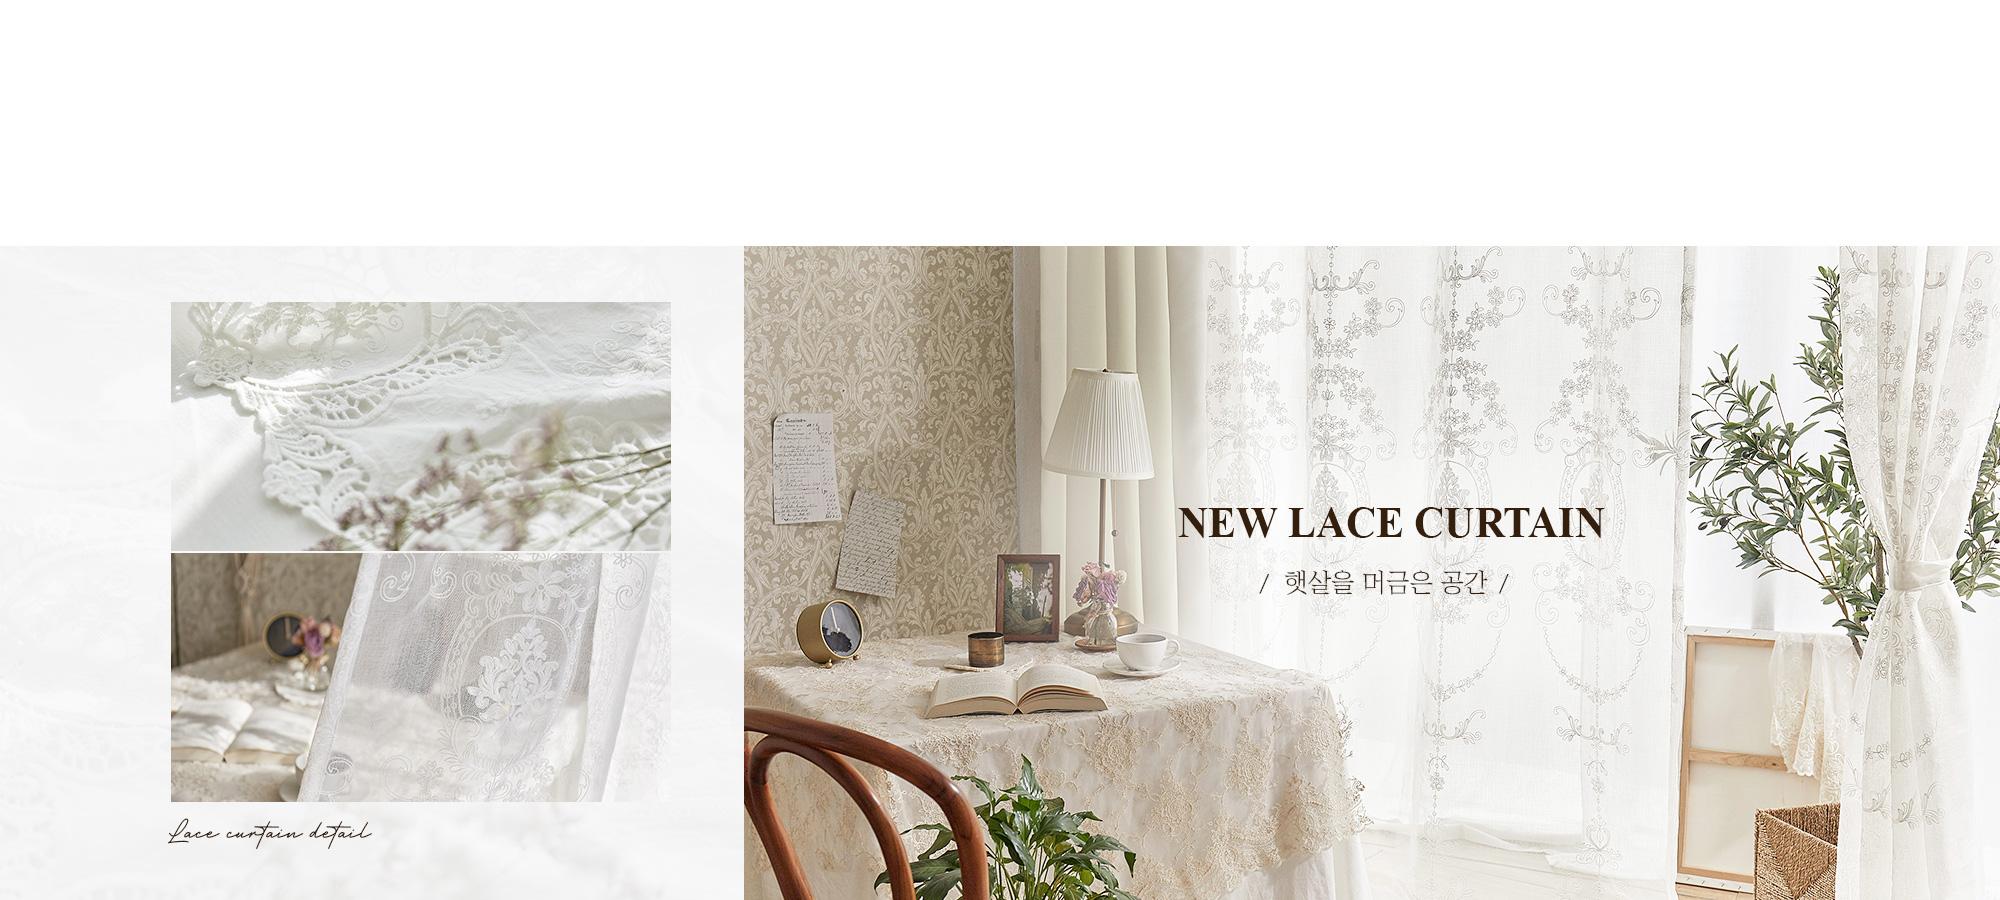 NEW LACE CURTAIN